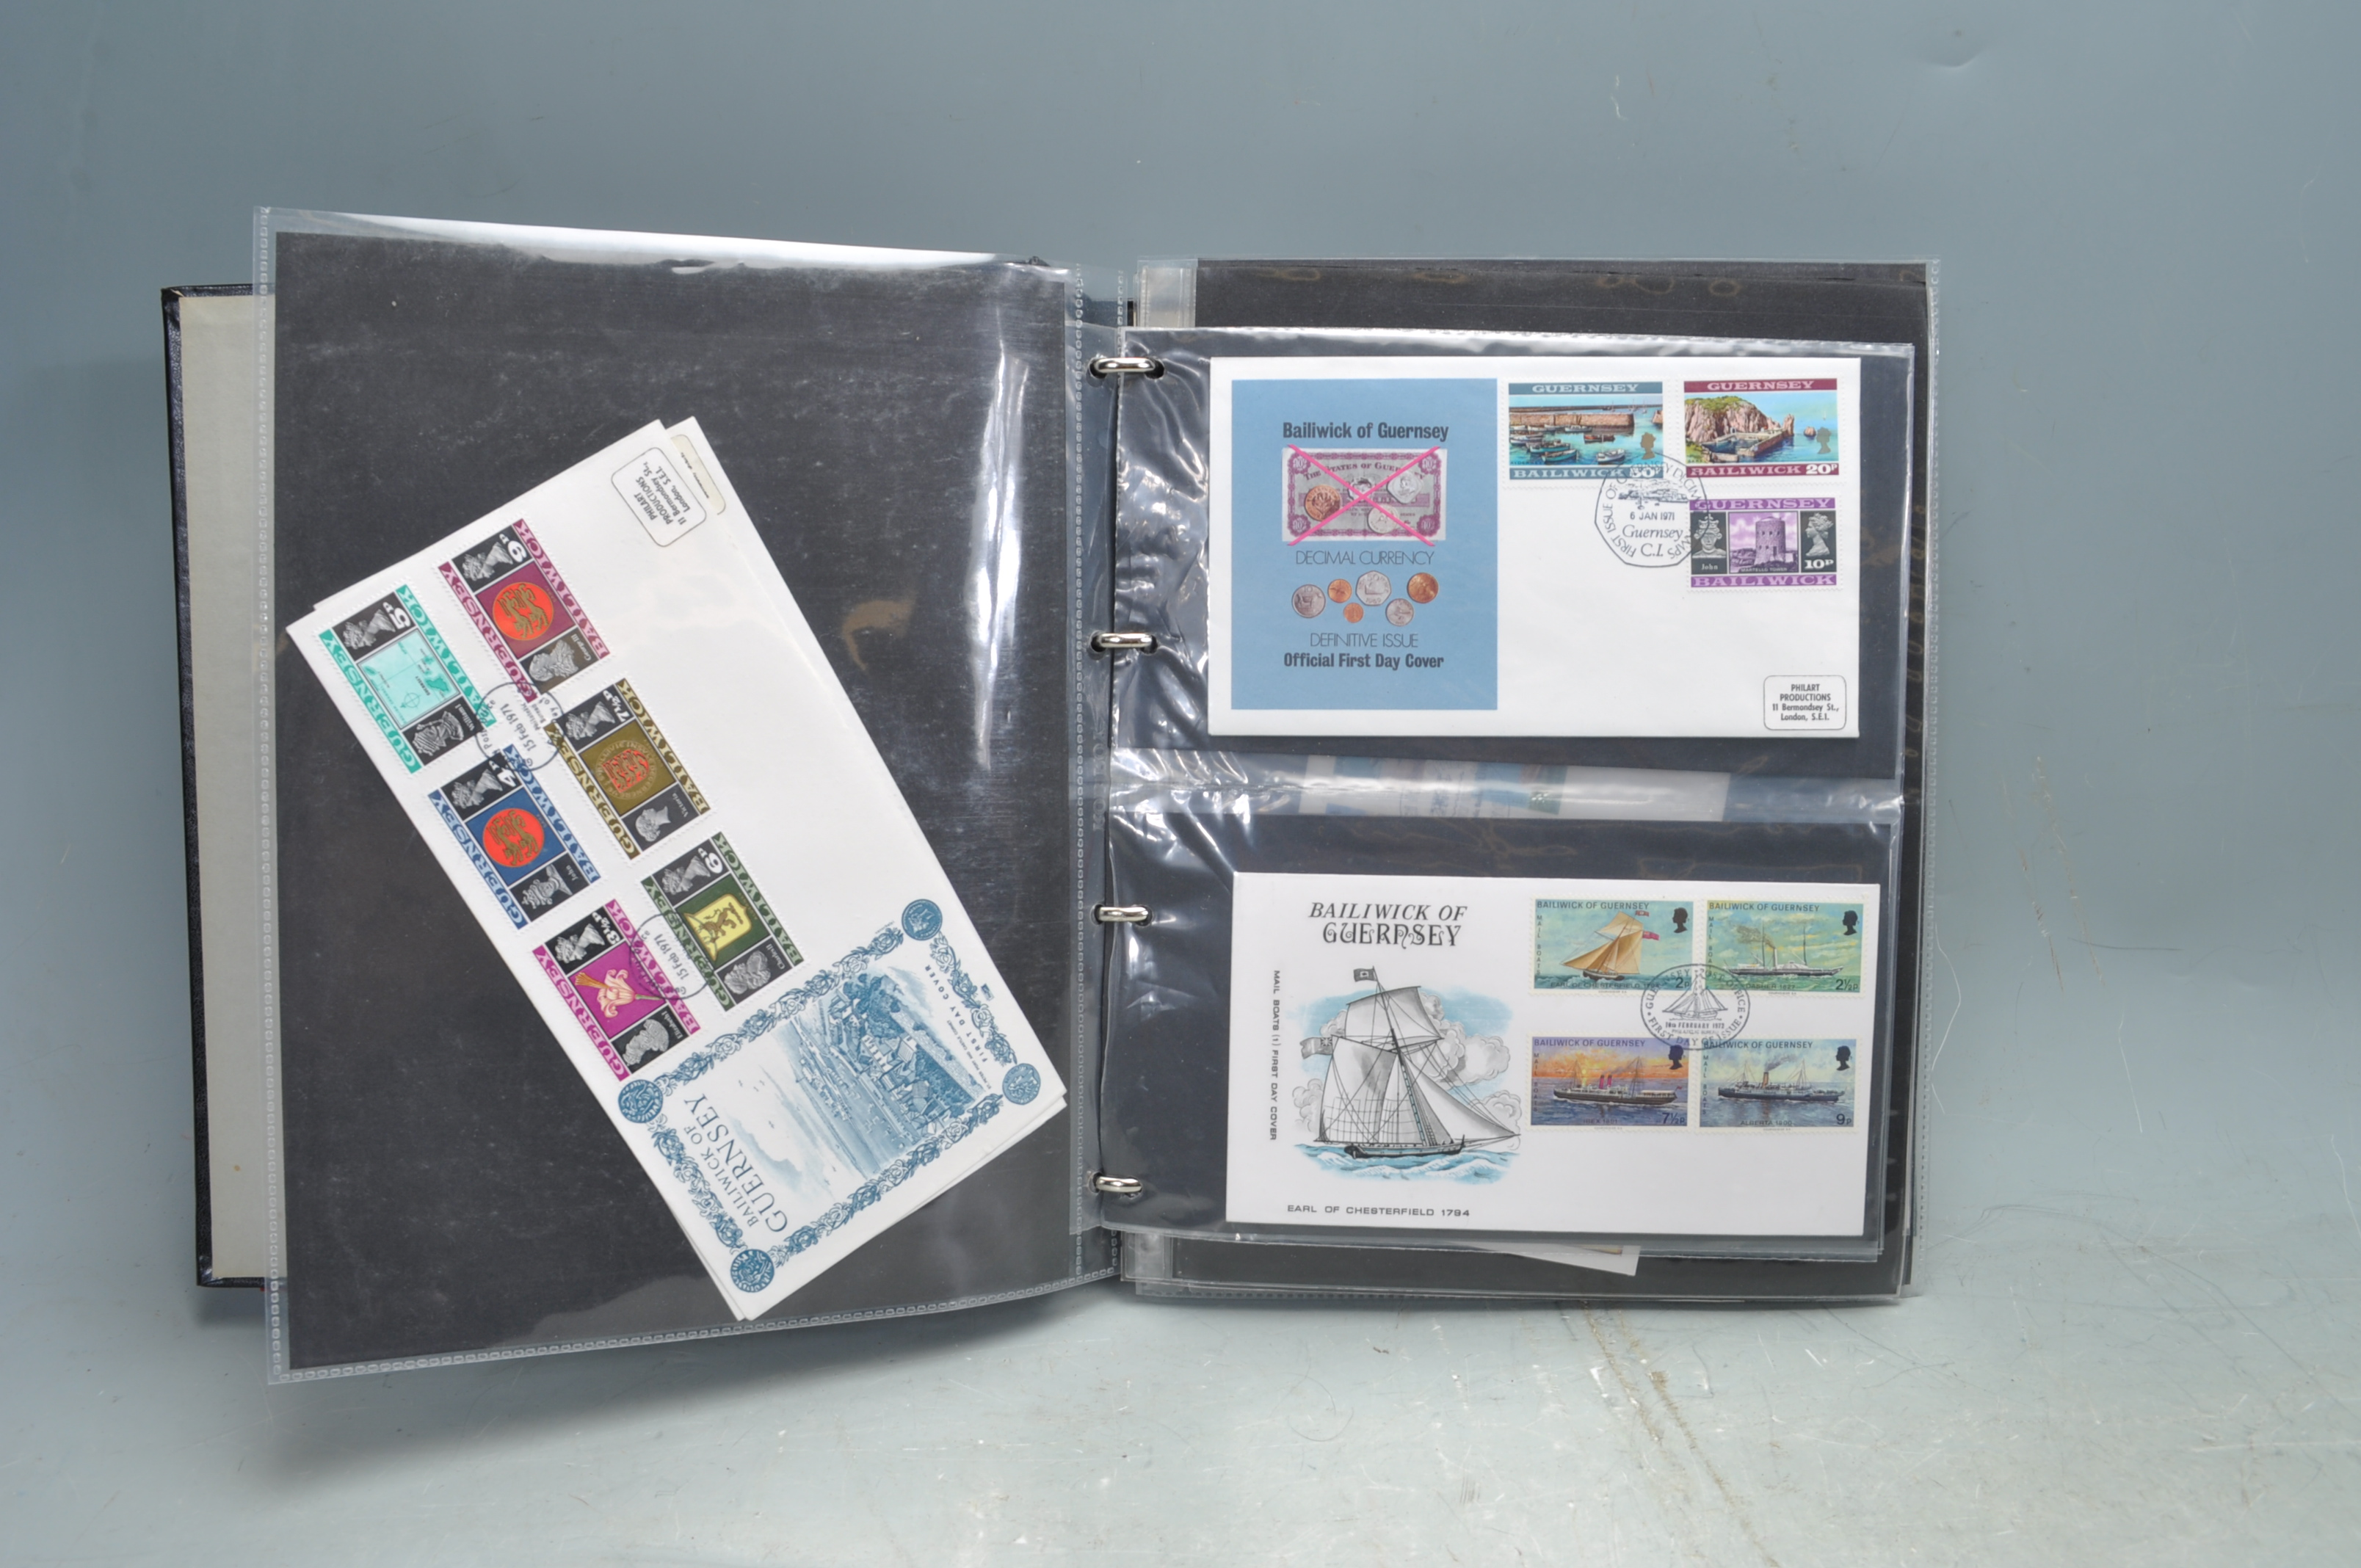 STAMPS - CHANNEL ISLANDS AND ISLE OF MAN - Image 9 of 13